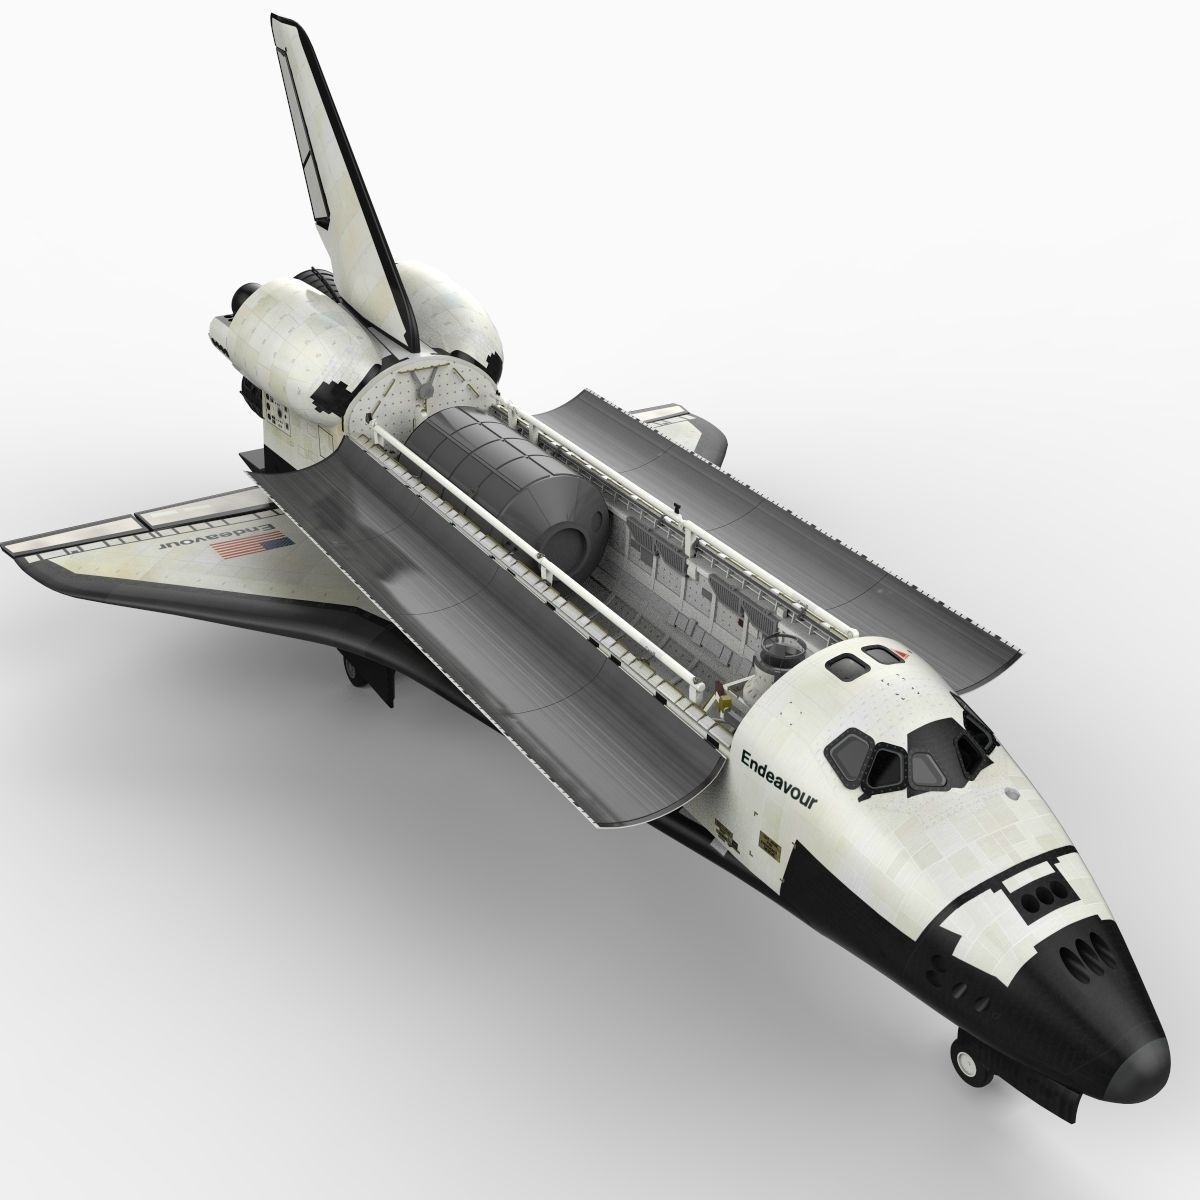 space shuttle system - photo #30